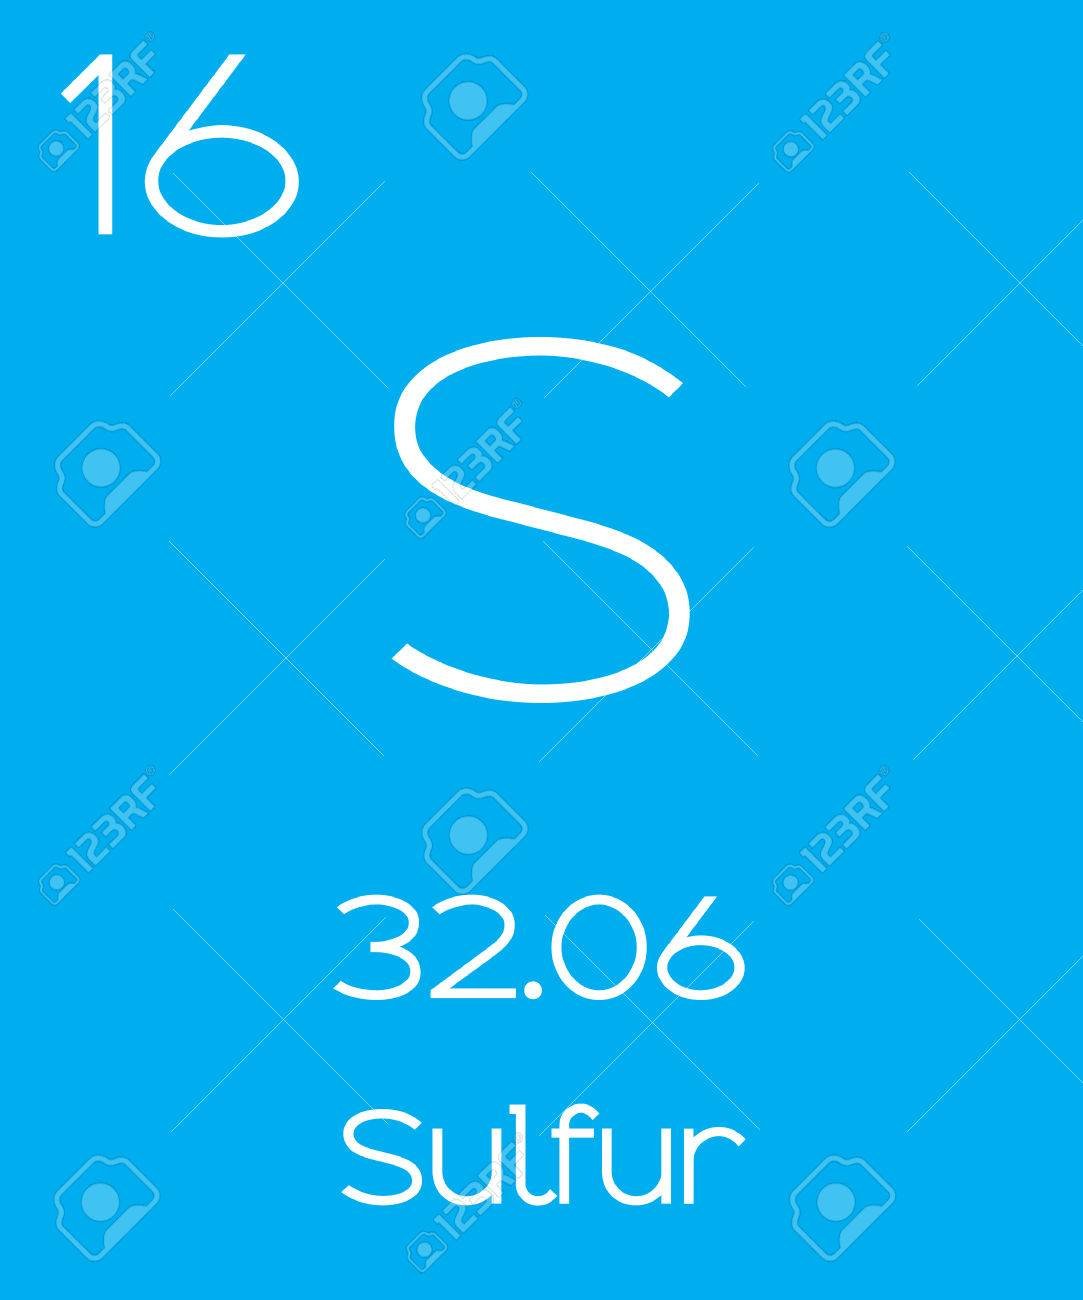 An informative illustration of the periodic element sulfur an informative illustration of the periodic element sulfur stock vector 45189152 buycottarizona Image collections